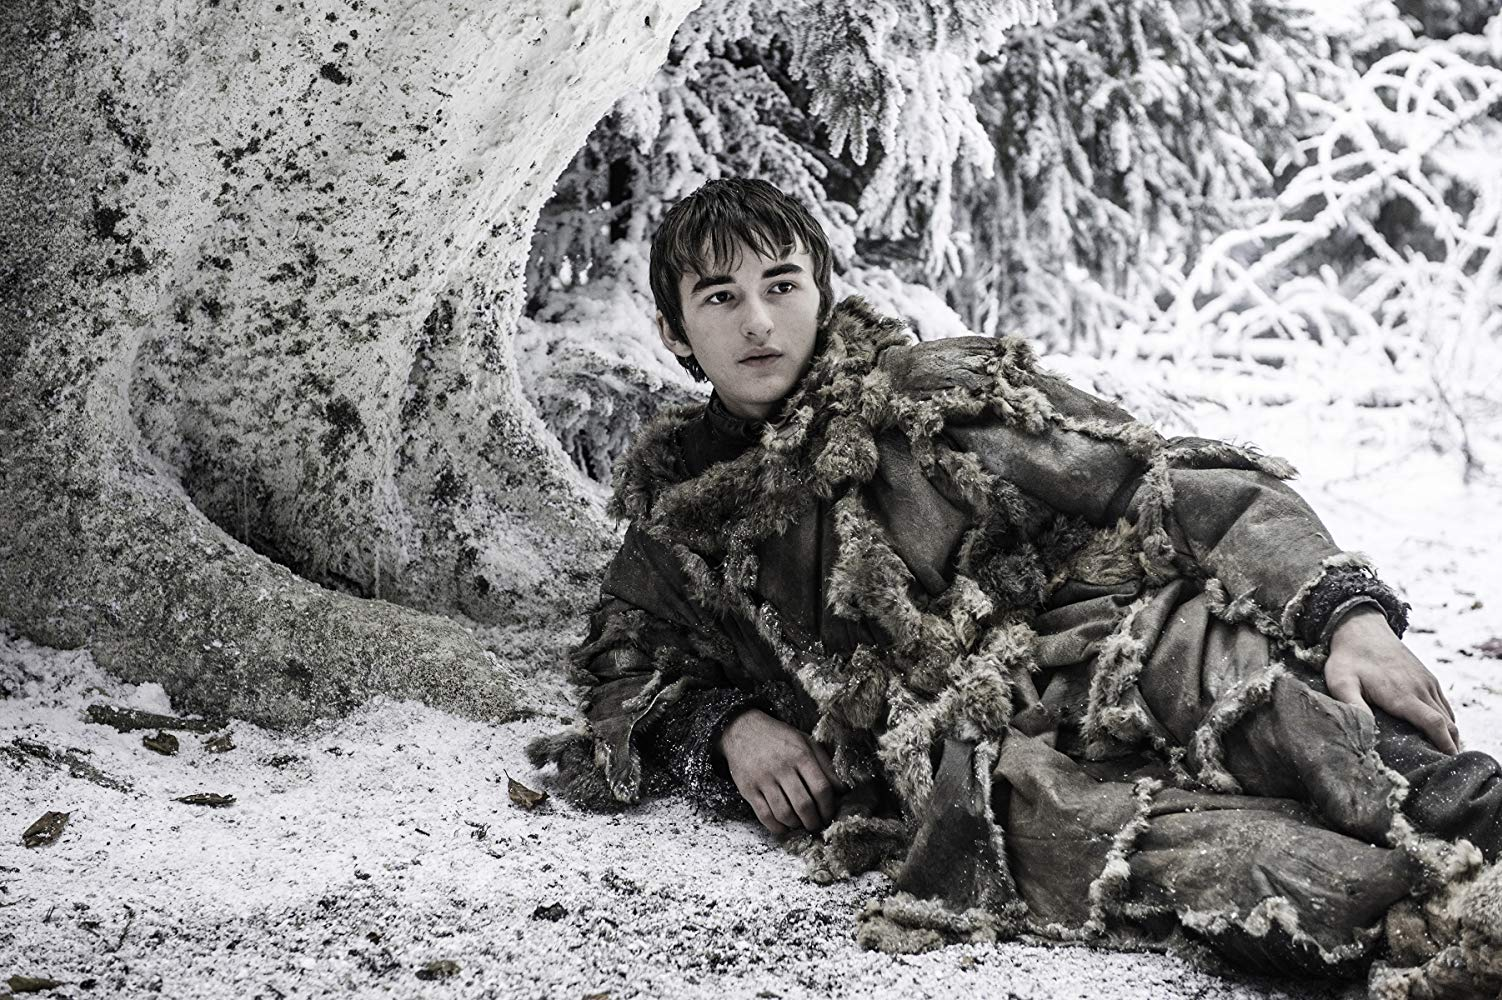 Isaac Hempstead Wright as Bran Stark in Game of Thrones (2011). (Source: IMDB)